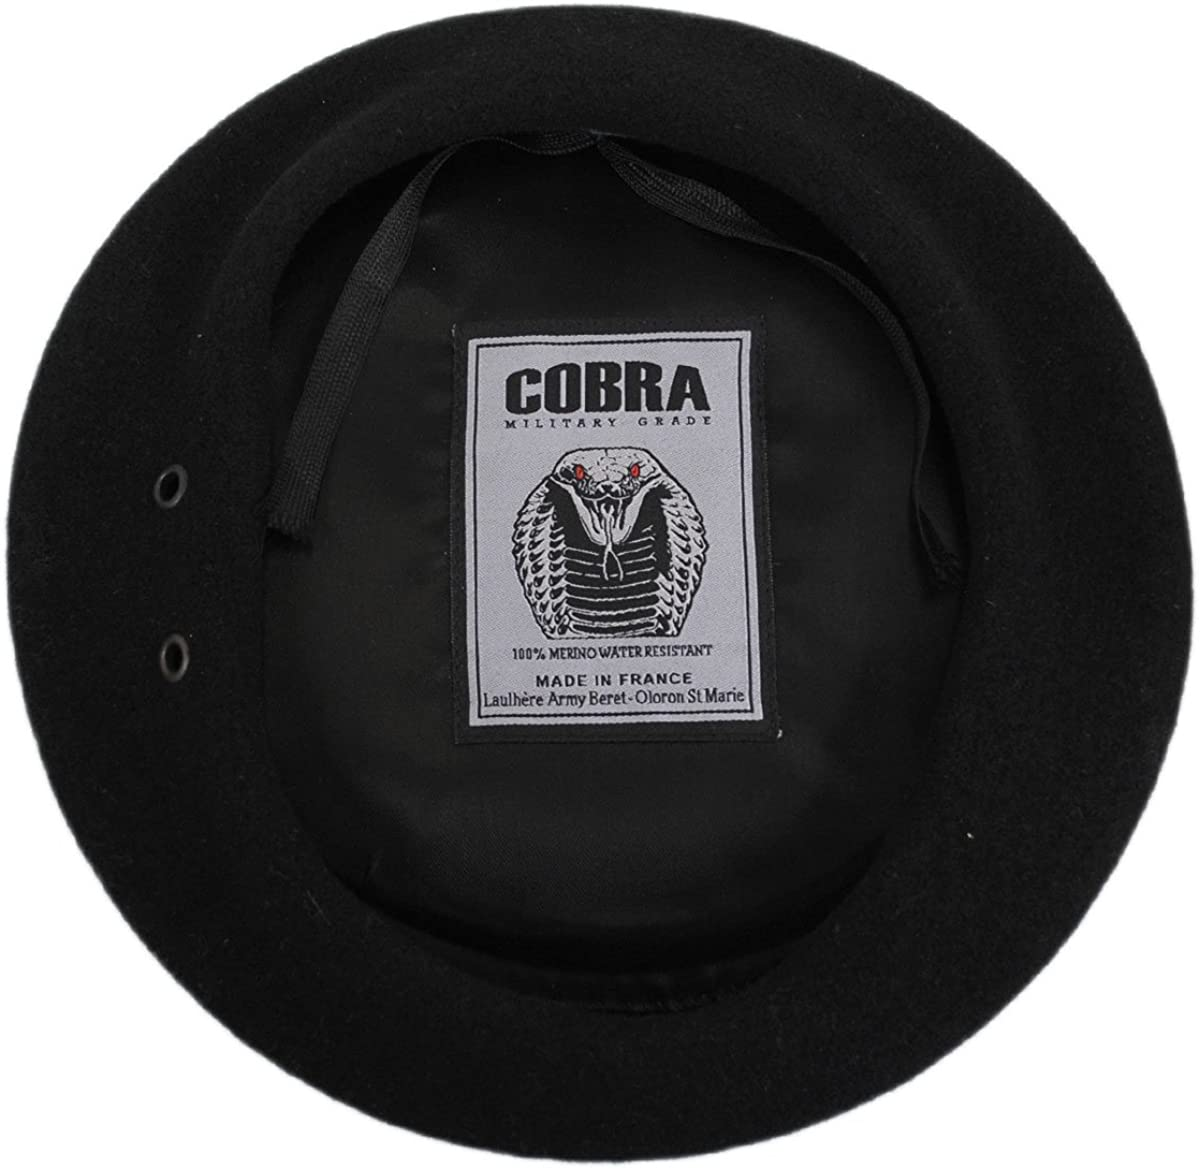 New product type Cobra Wool Beret Free Shipping Cheap Bargain Gift Military